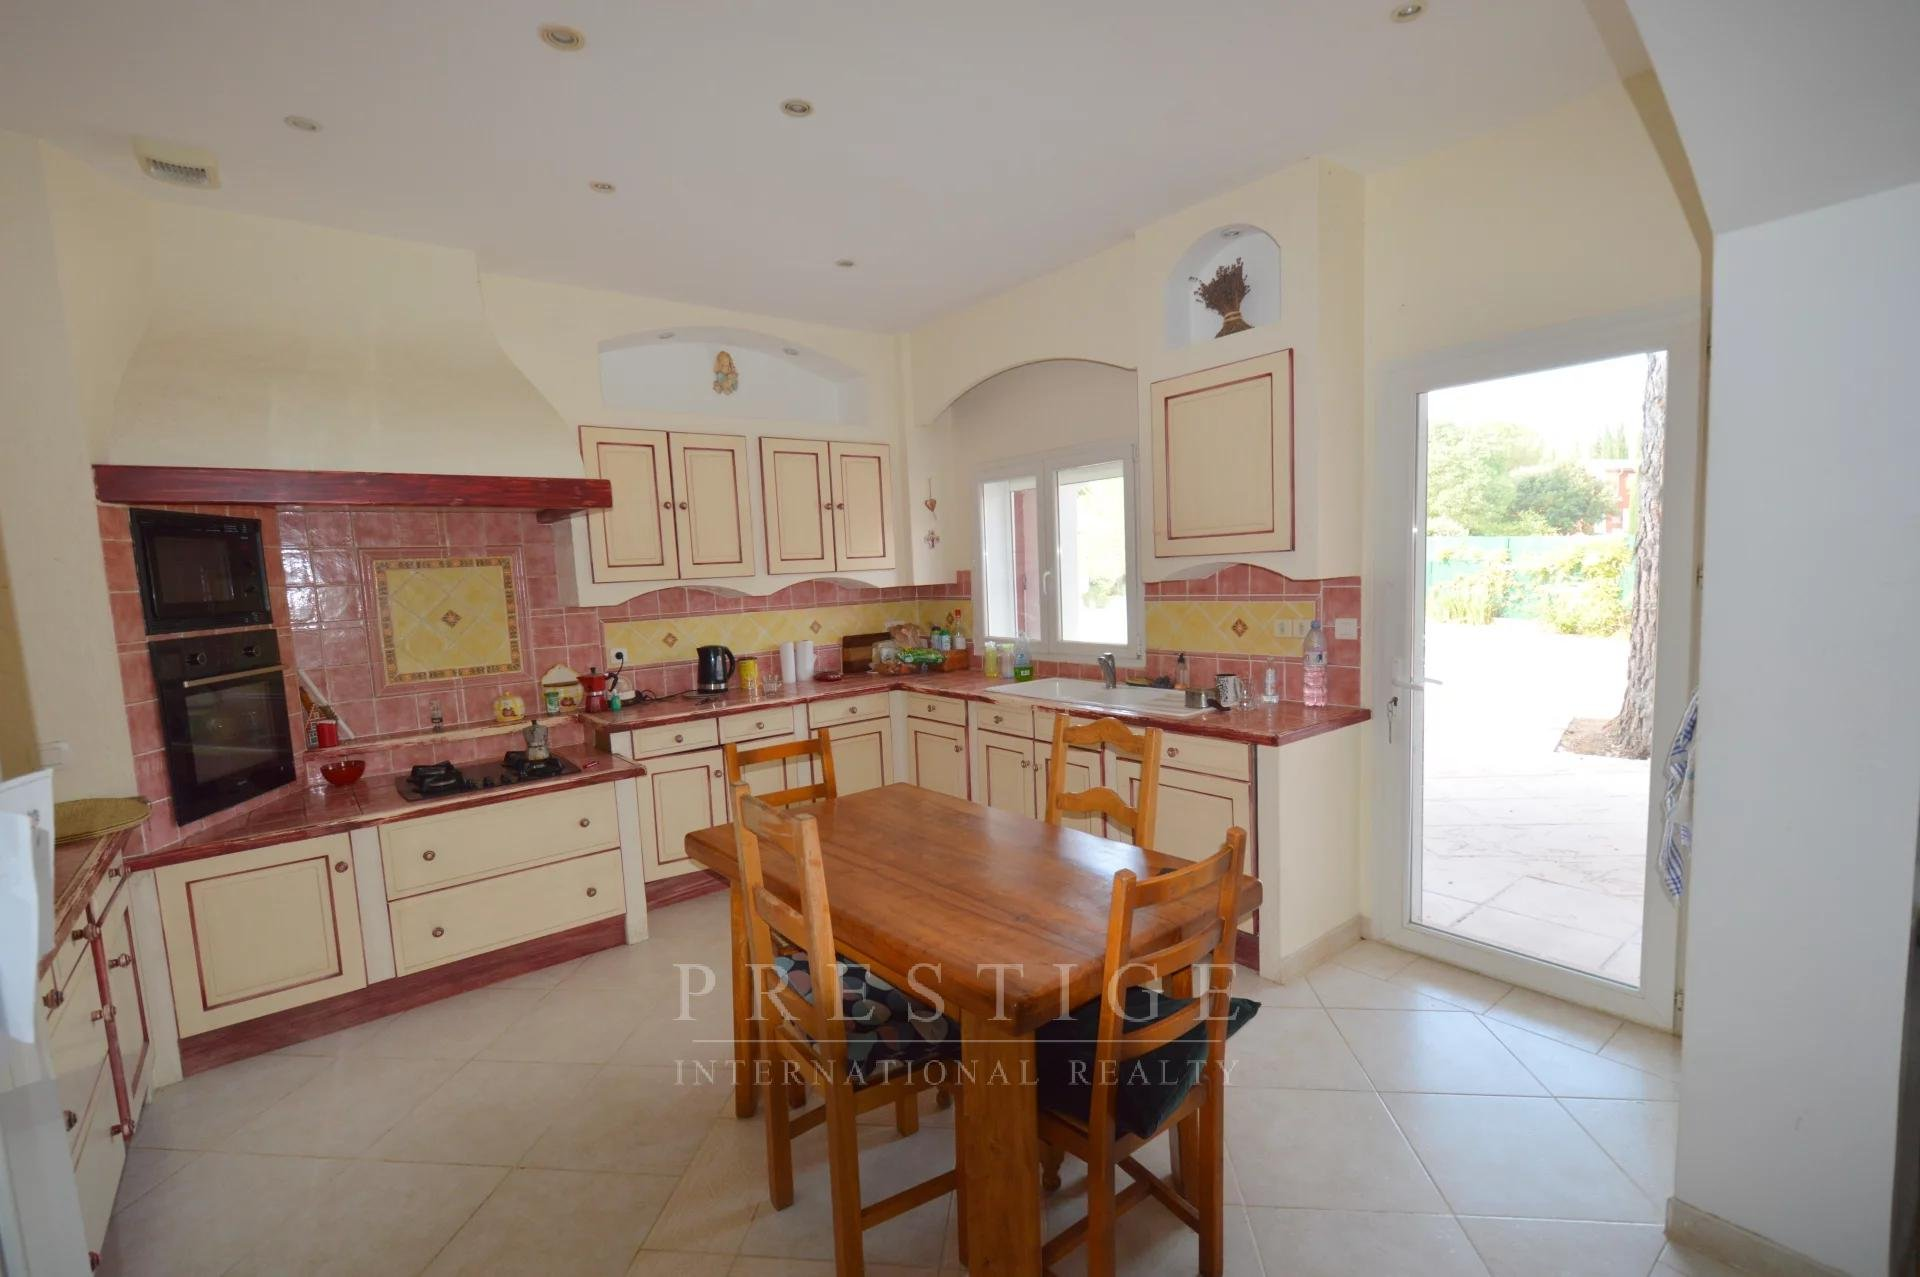 COTIGNAC house of 200sqm & 55 sqm of annexes with pool